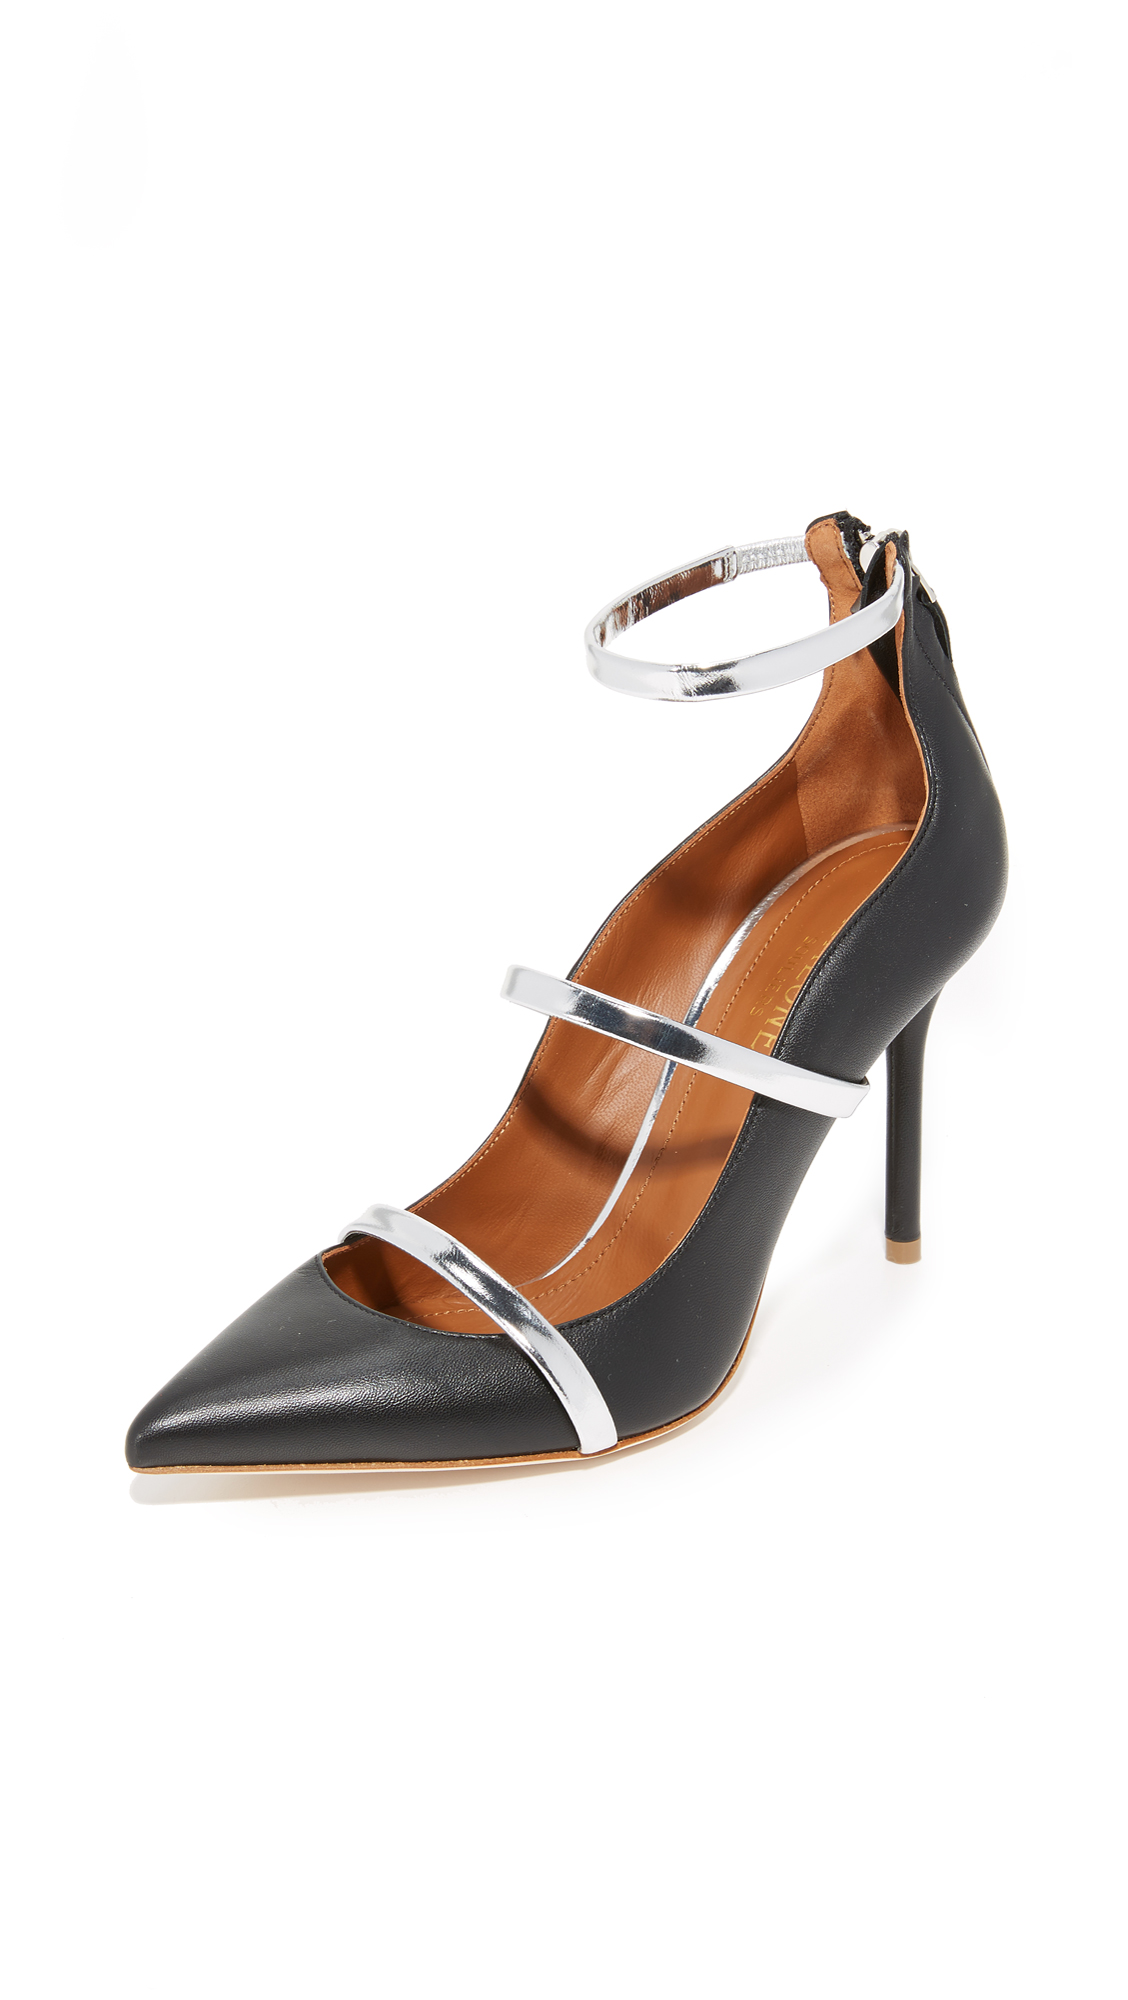 Malone Souliers Robyn Pumps - Black/Silver